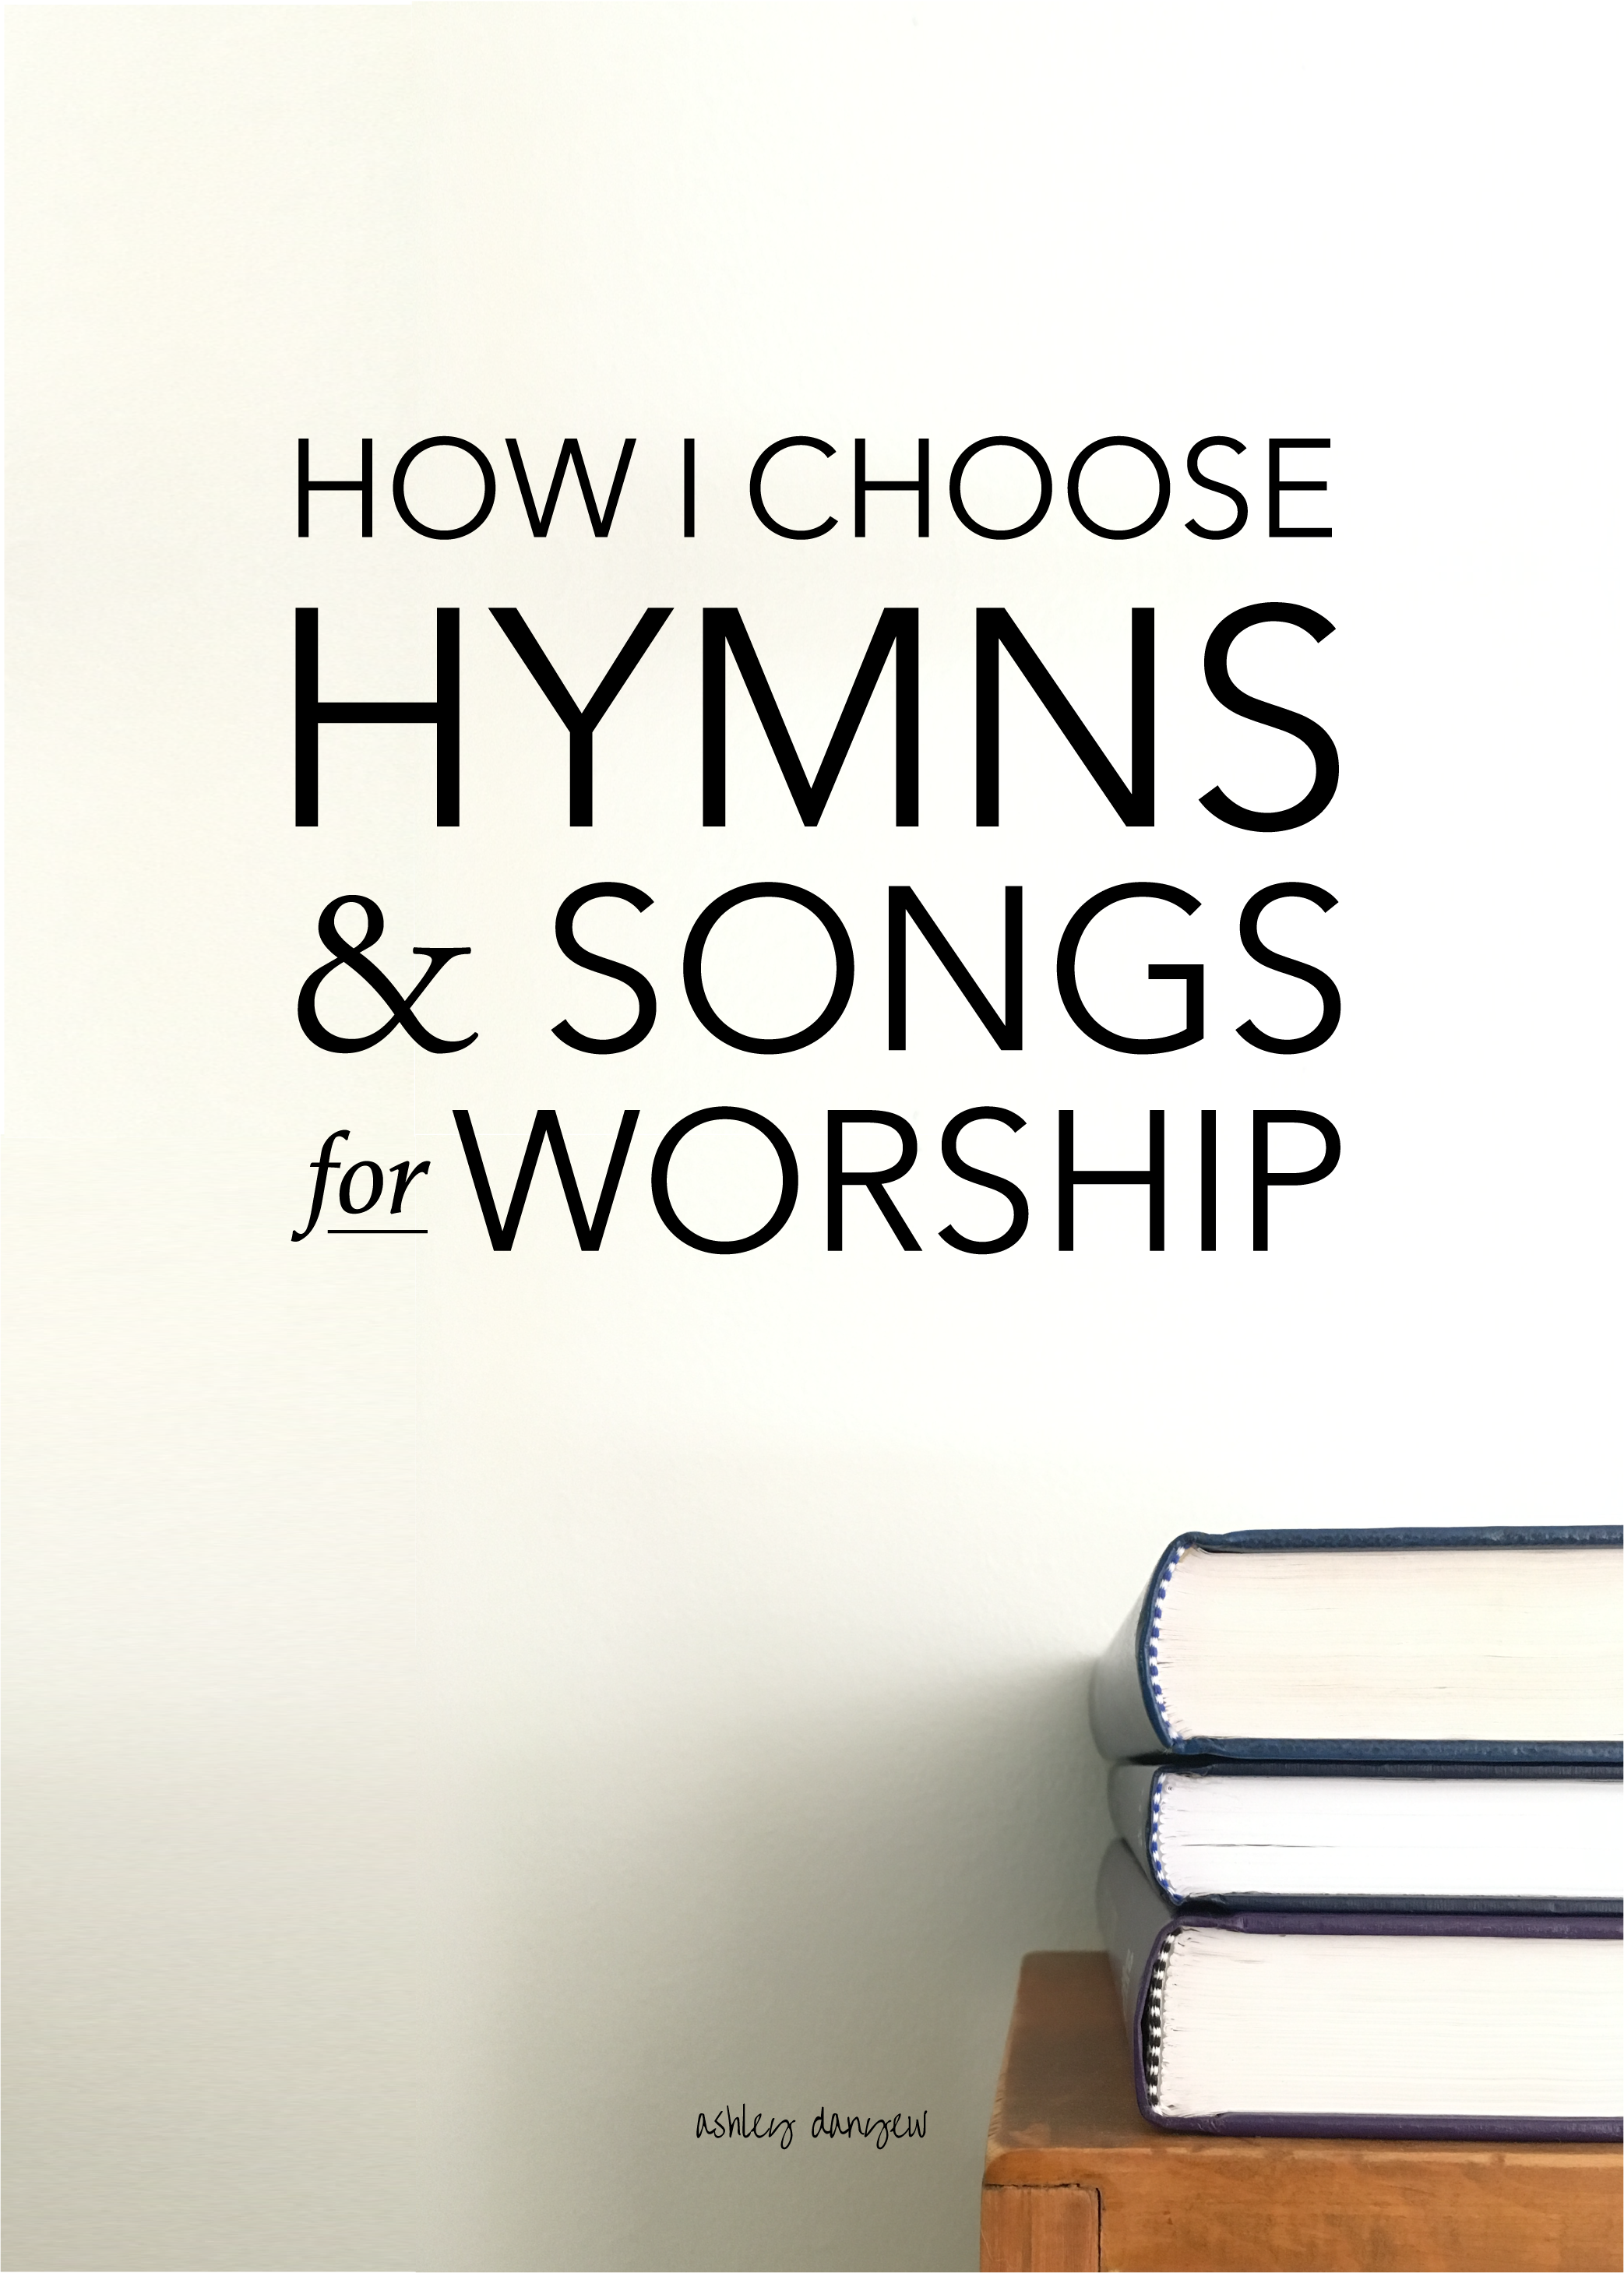 Copy of How I Choose Hymns and Songs for Worship